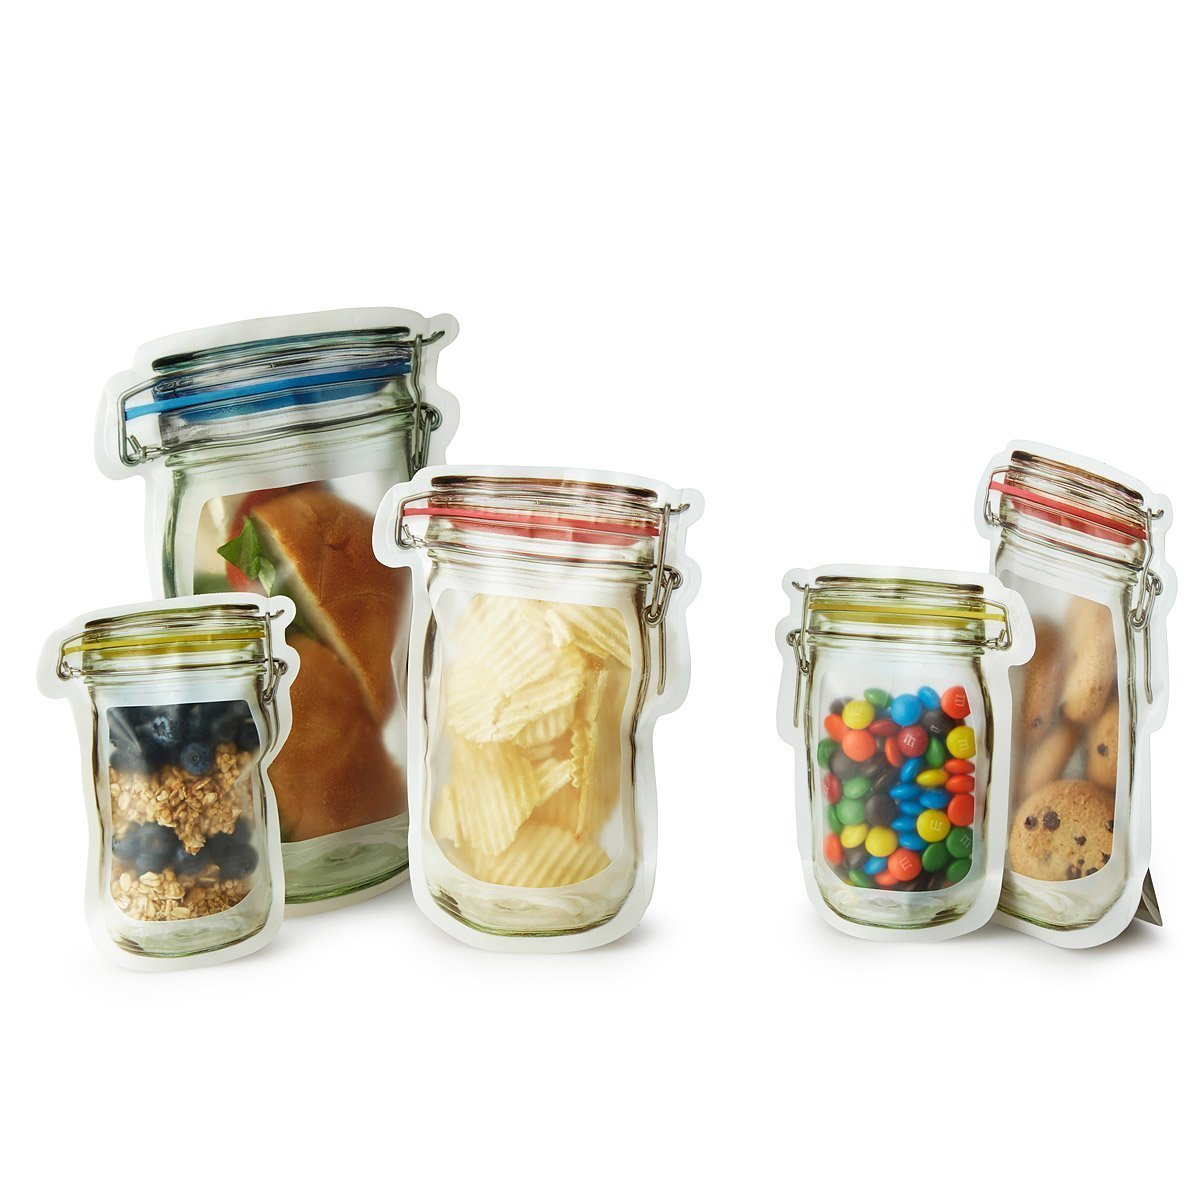 Vintage Jar Reusable Storage Bags 10-Pack